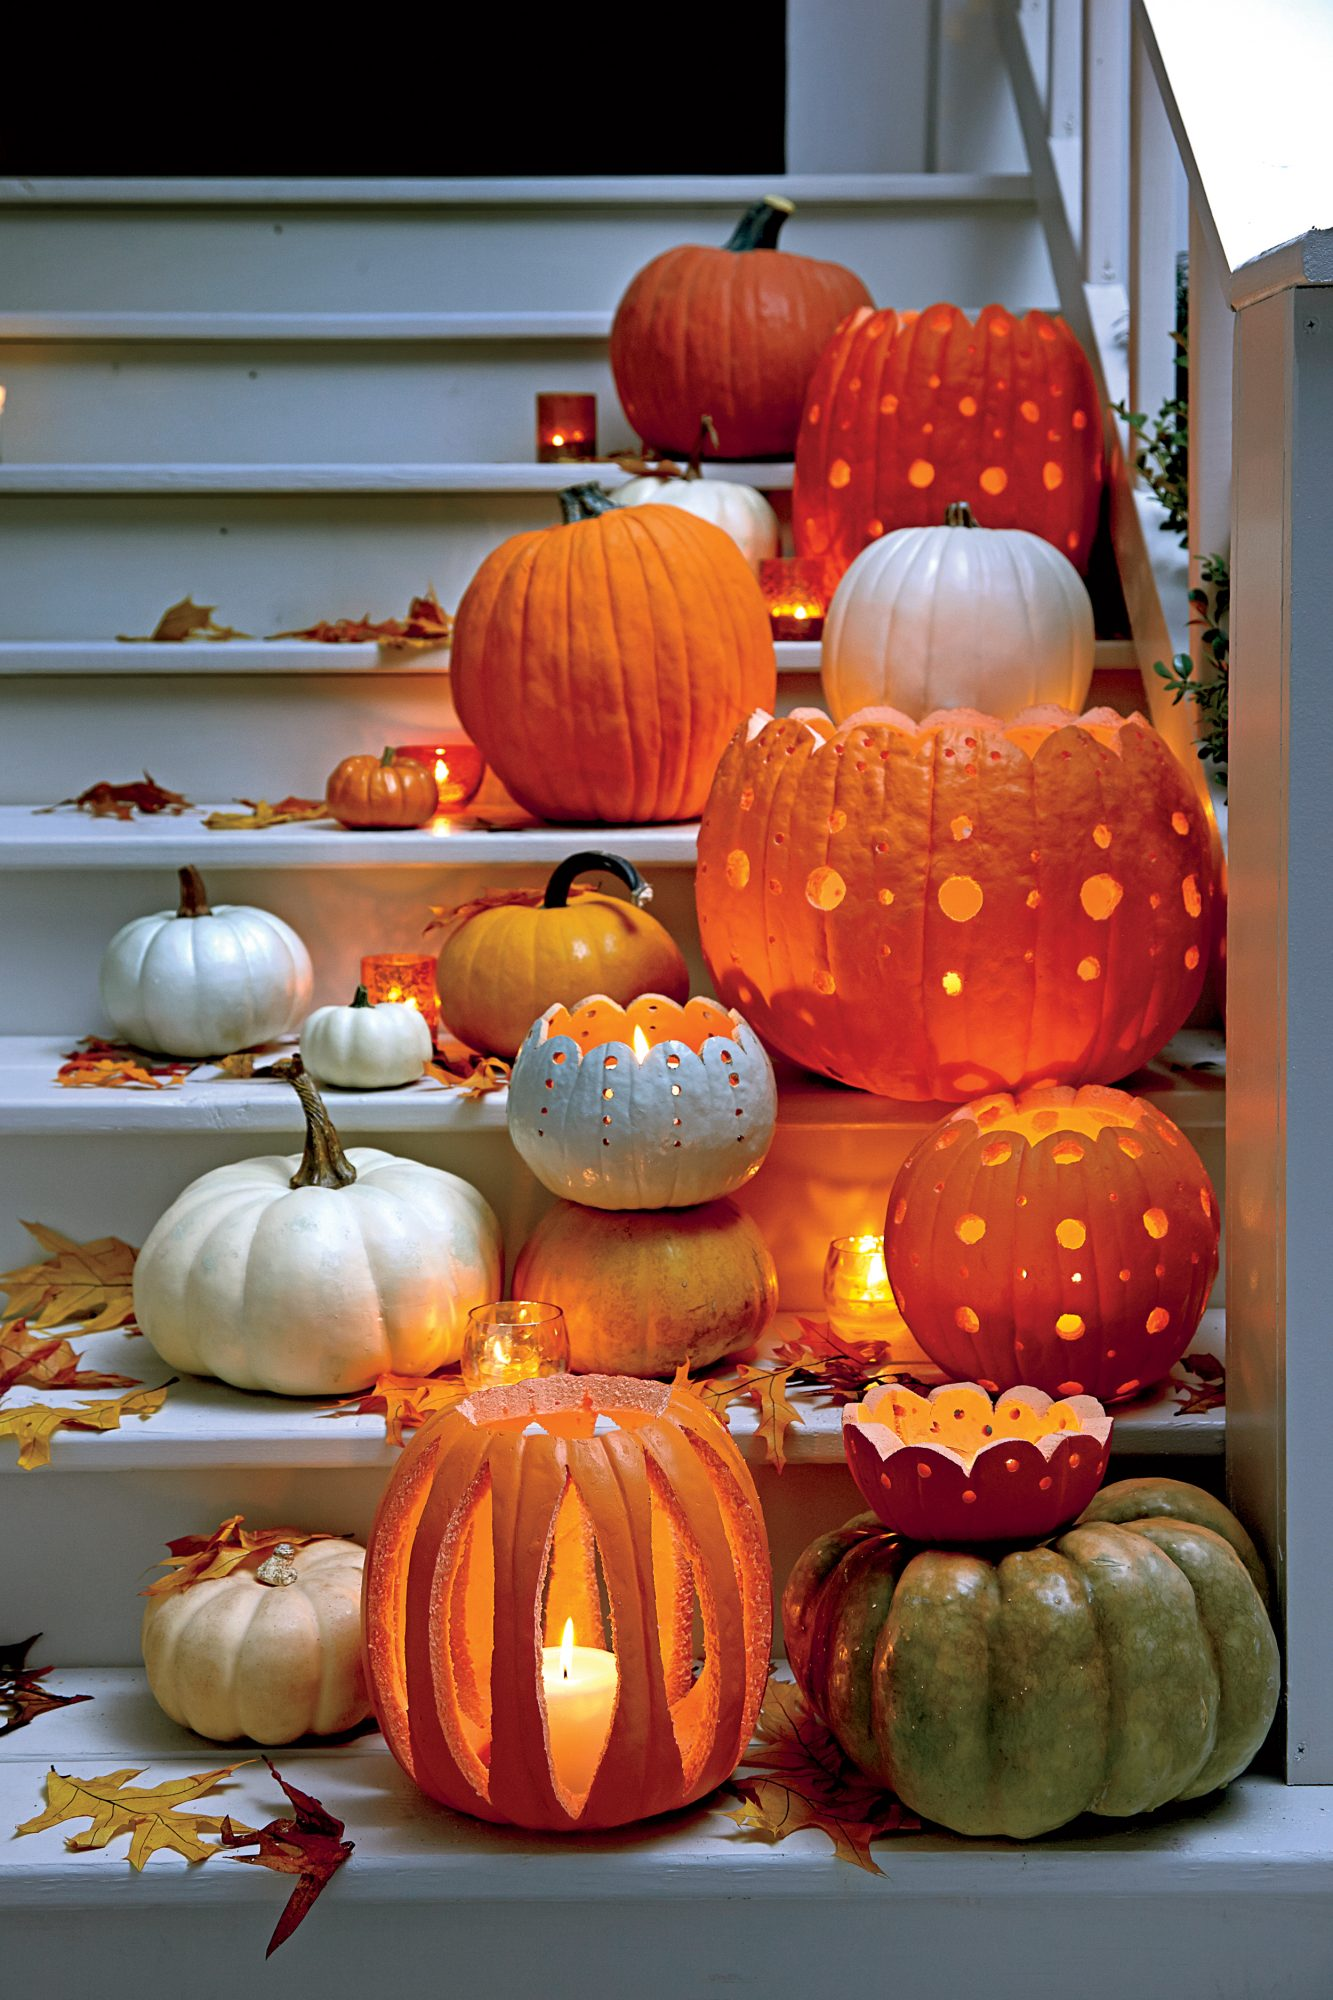 Carve a Patterned Pumpkin